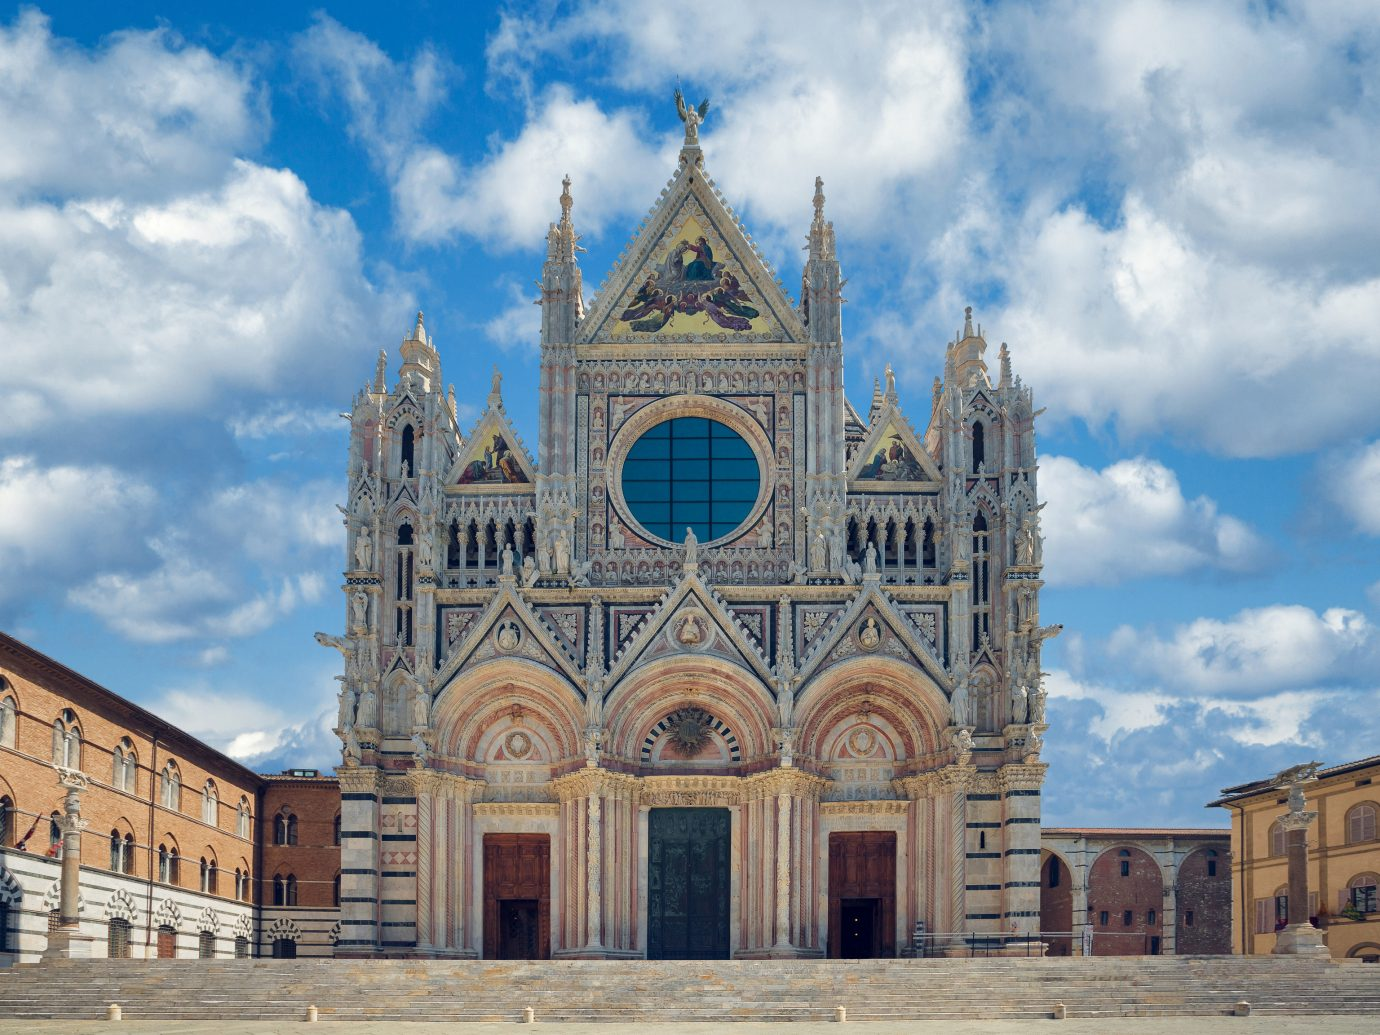 Italy Trip Ideas sky medieval architecture classical architecture landmark cathedral building historic site place of worship Church parish gothic architecture basilica facade abbey spire byzantine architecture symmetry steeple metropolis chapel arch